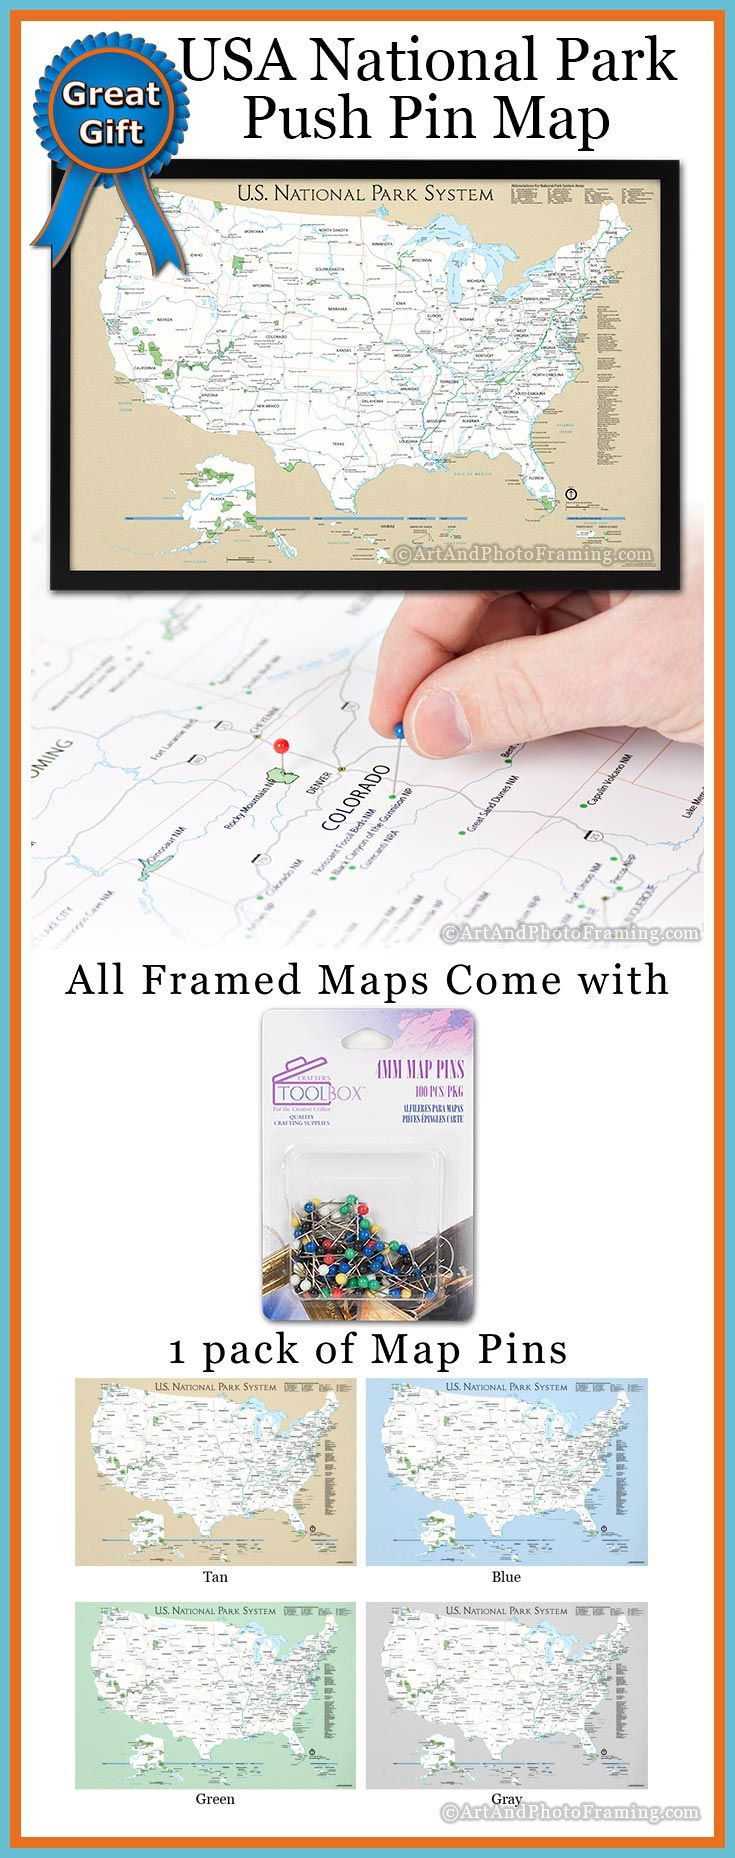 US National Park System Push Pin Map. Great gift for the world traveler or house warming gift. #pushpinmap